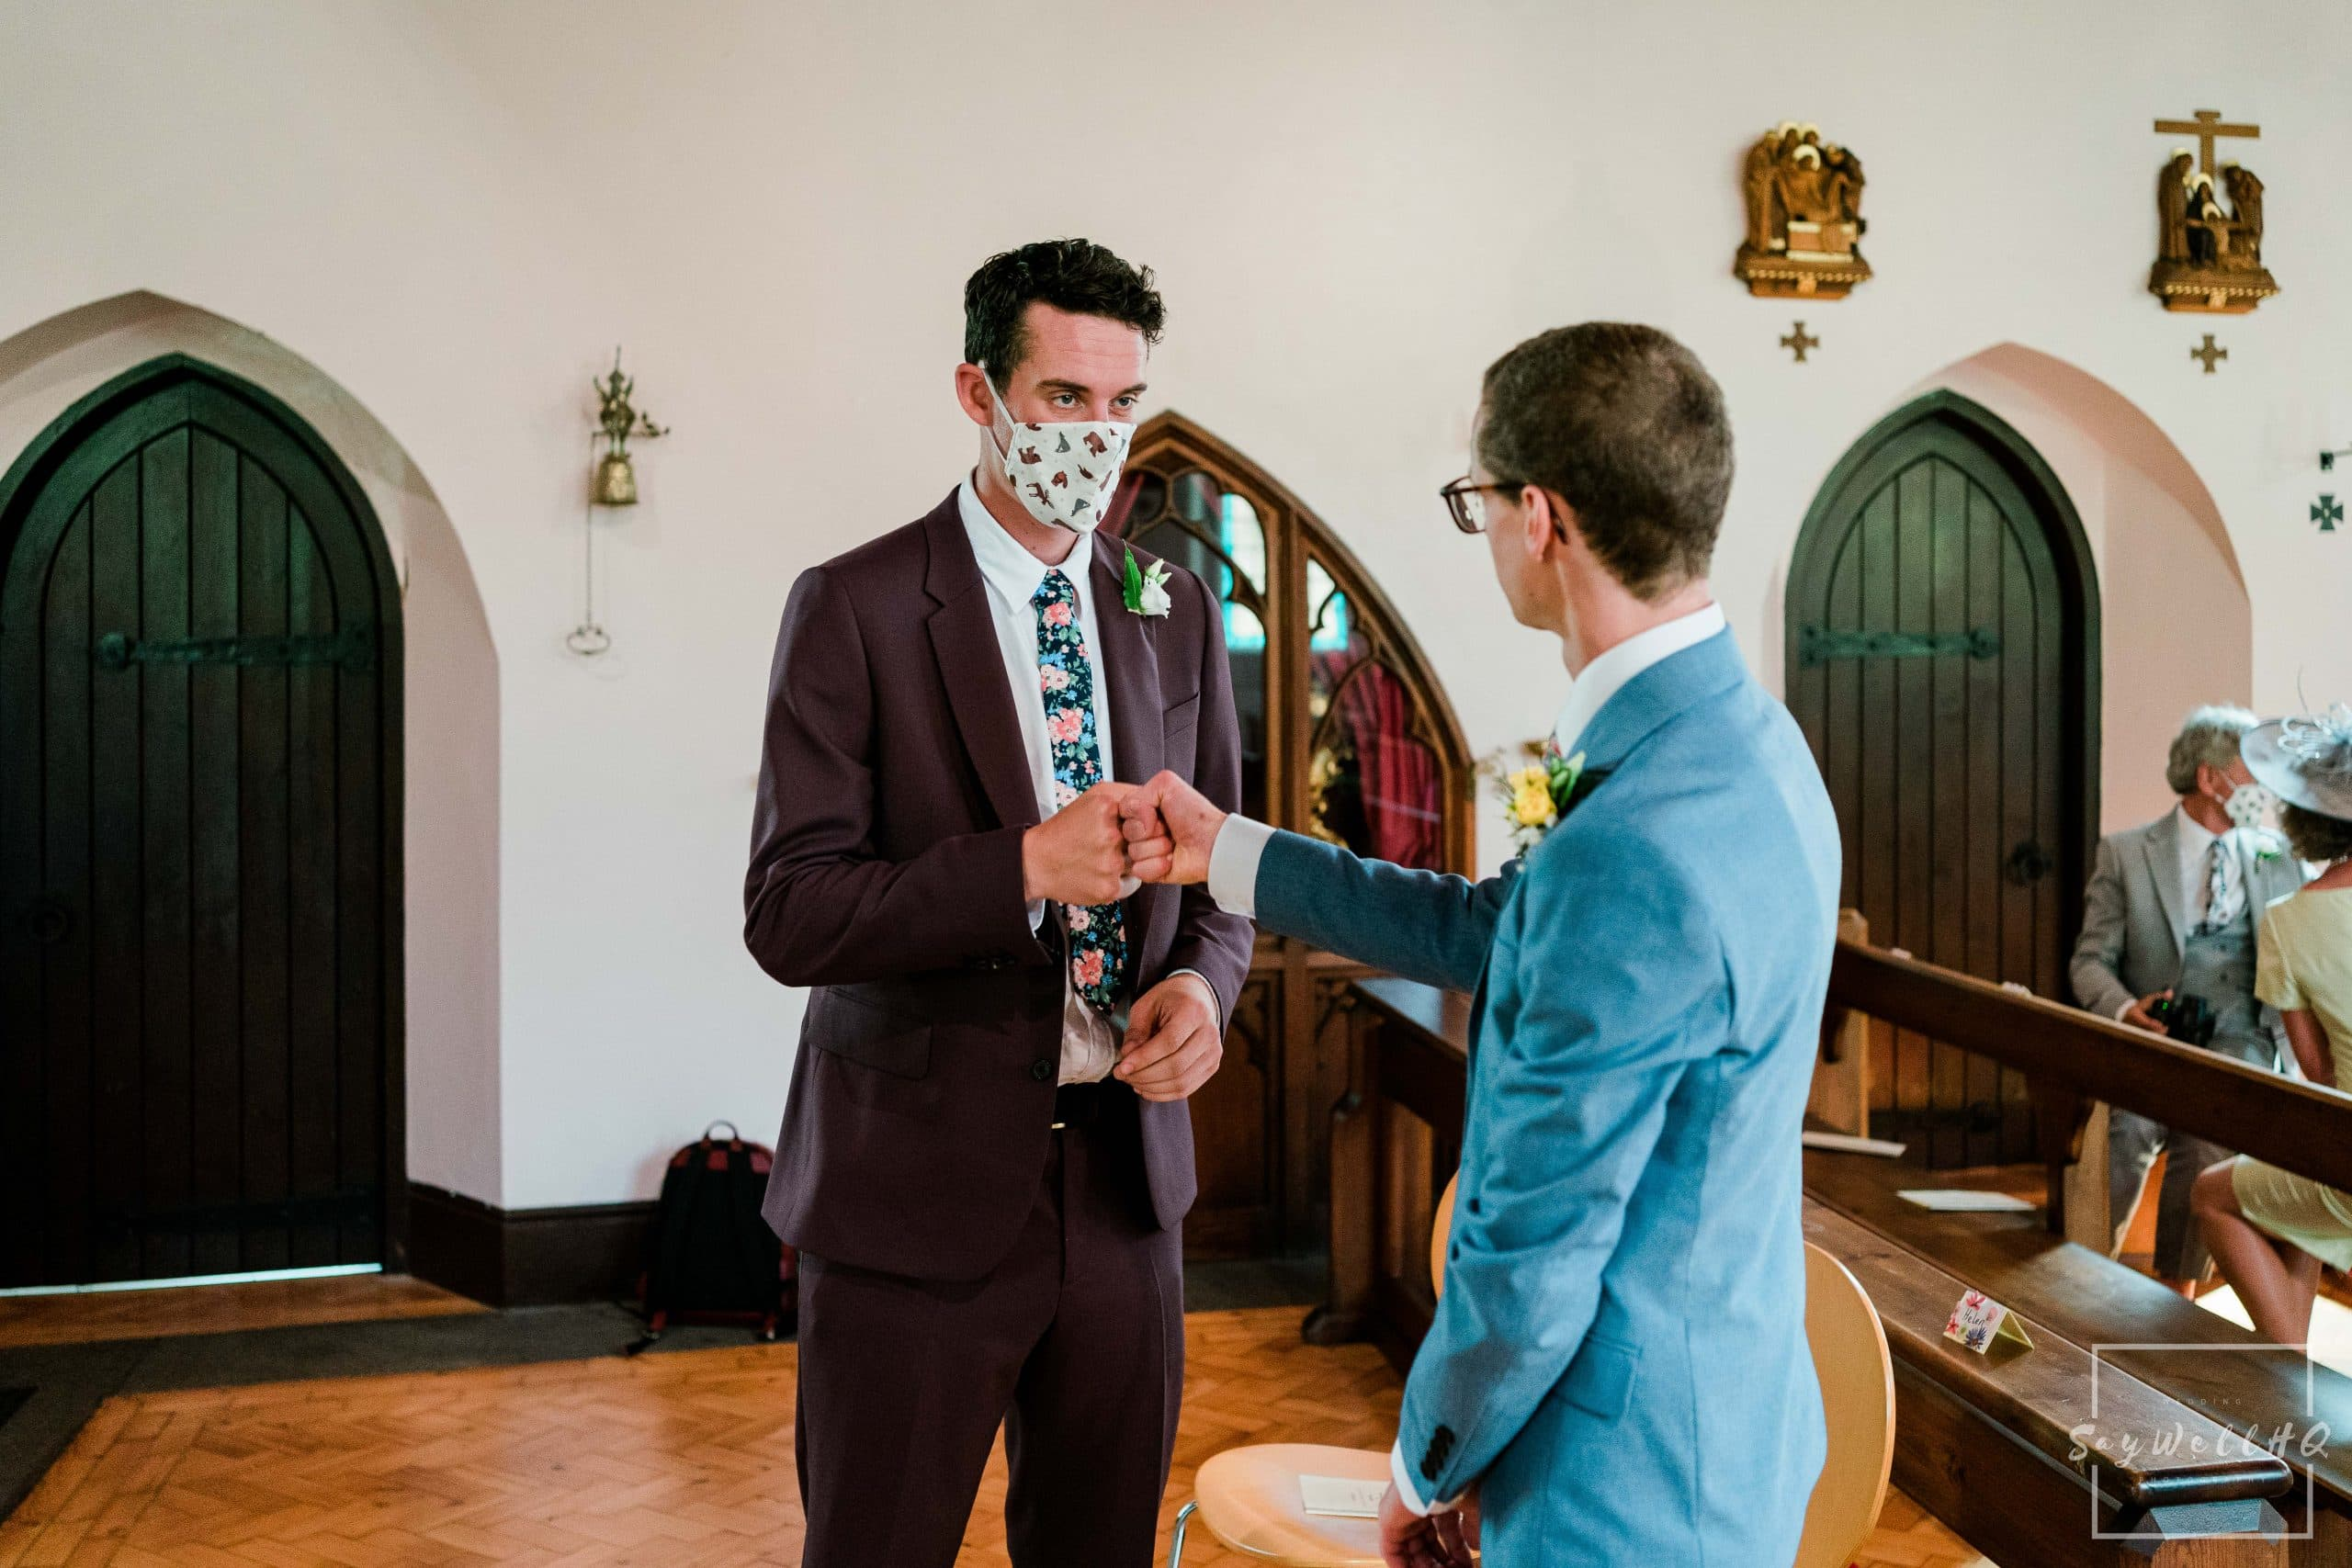 Groom and best man fist bump before the wedding ceremony